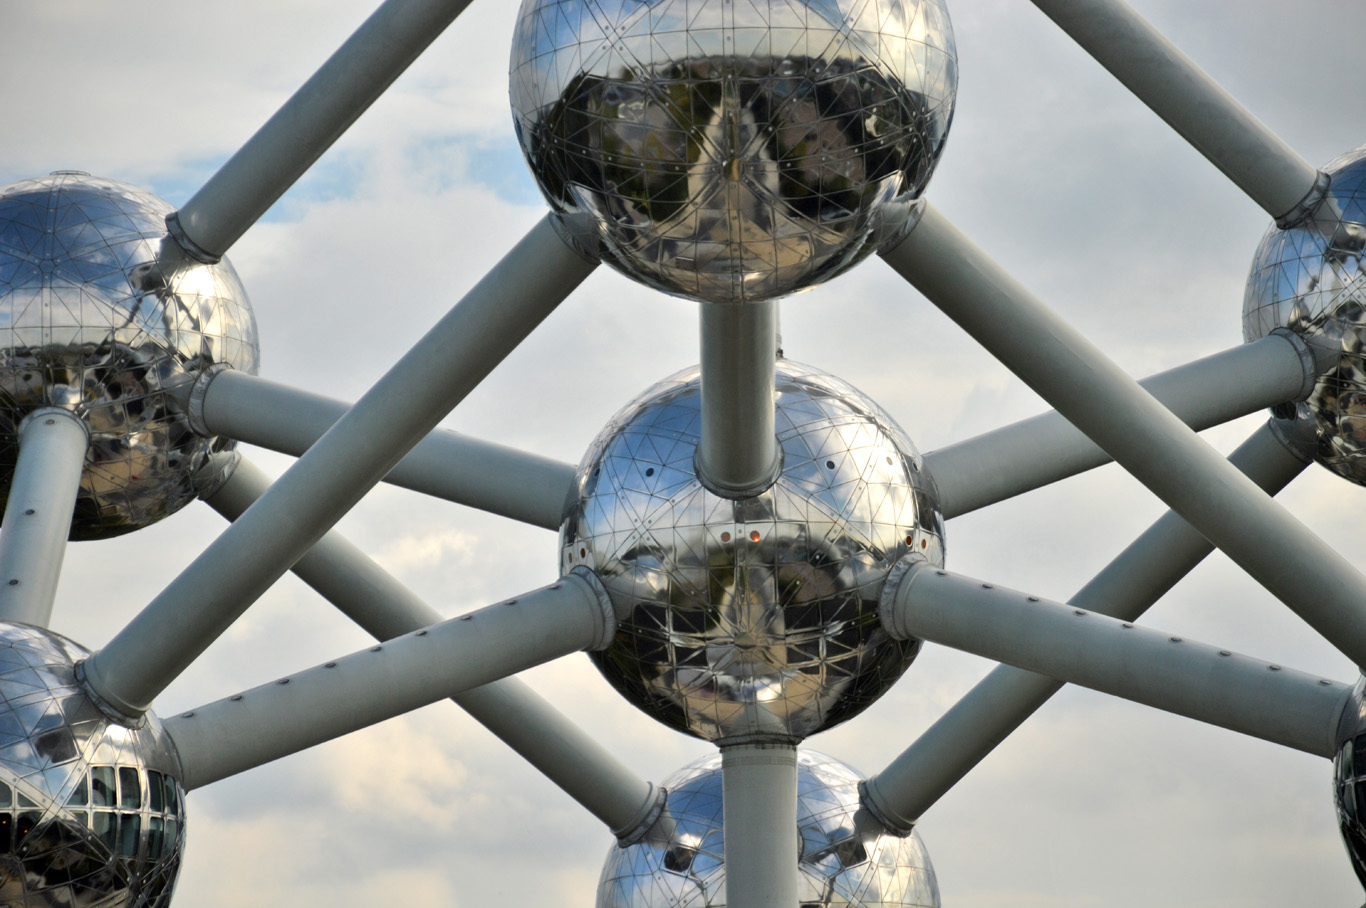 The spheres of the Atomium